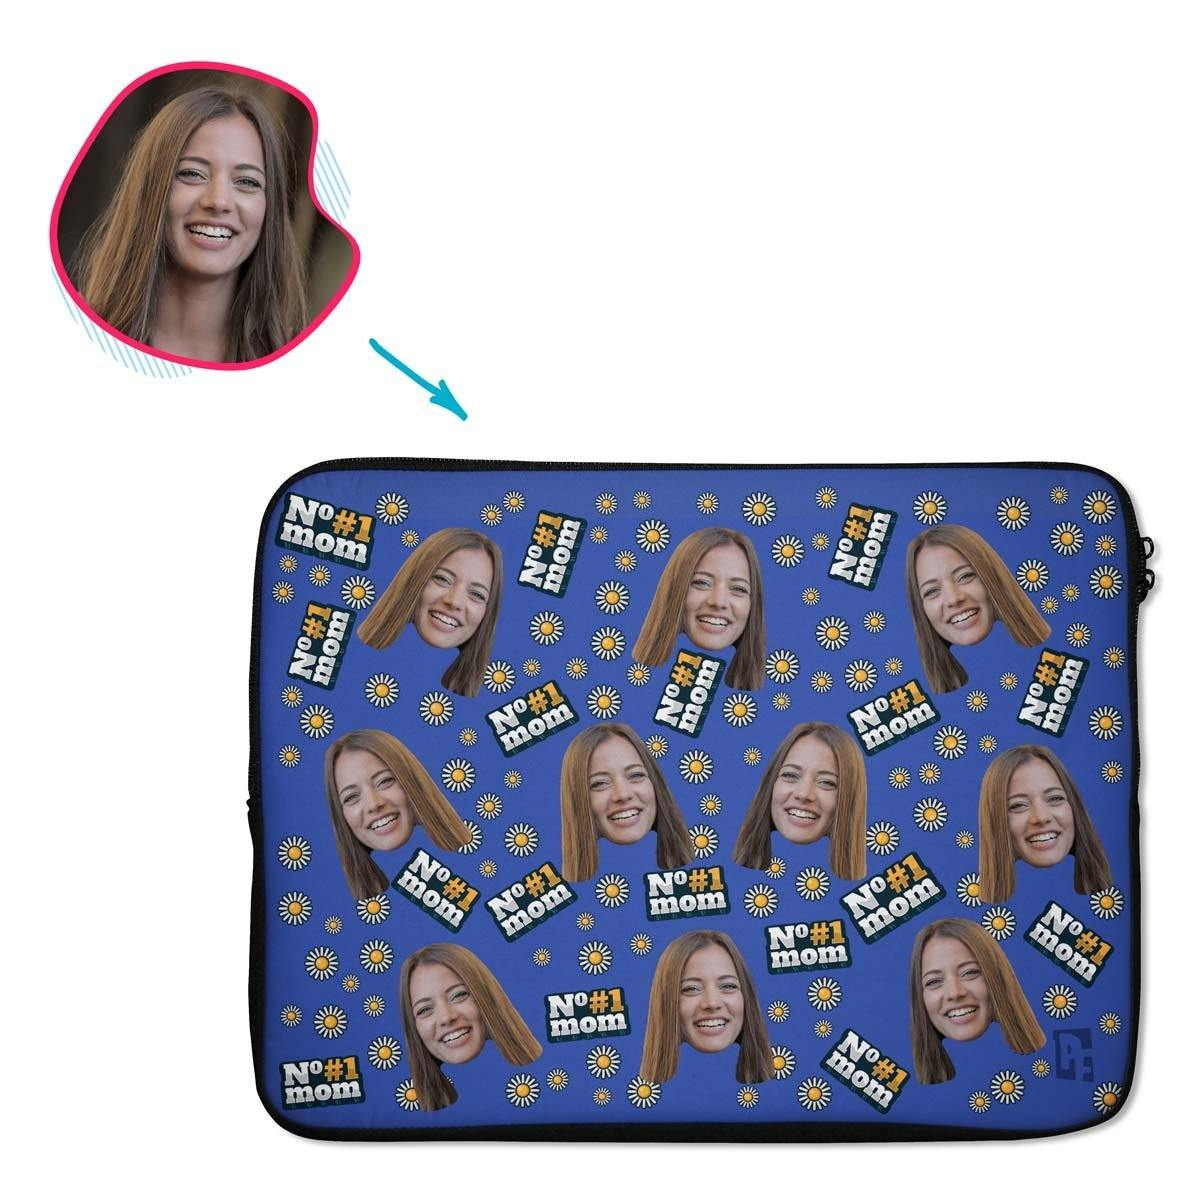 darkblue #1 Mom laptop sleeve personalized with photo of face printed on them